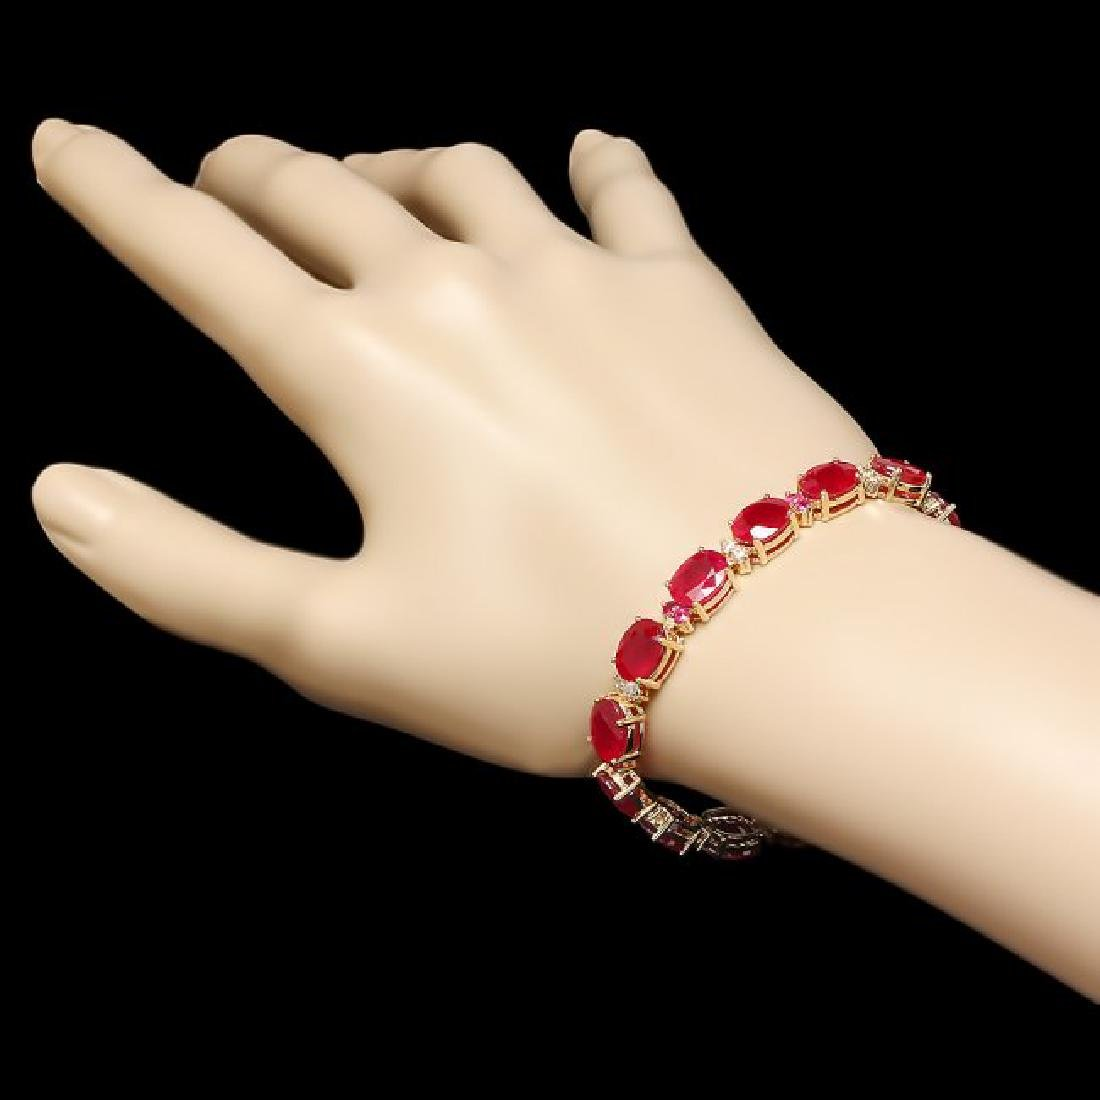 14k Gold 39.7ct Ruby 0.70ct Diamond Bracelet - 5